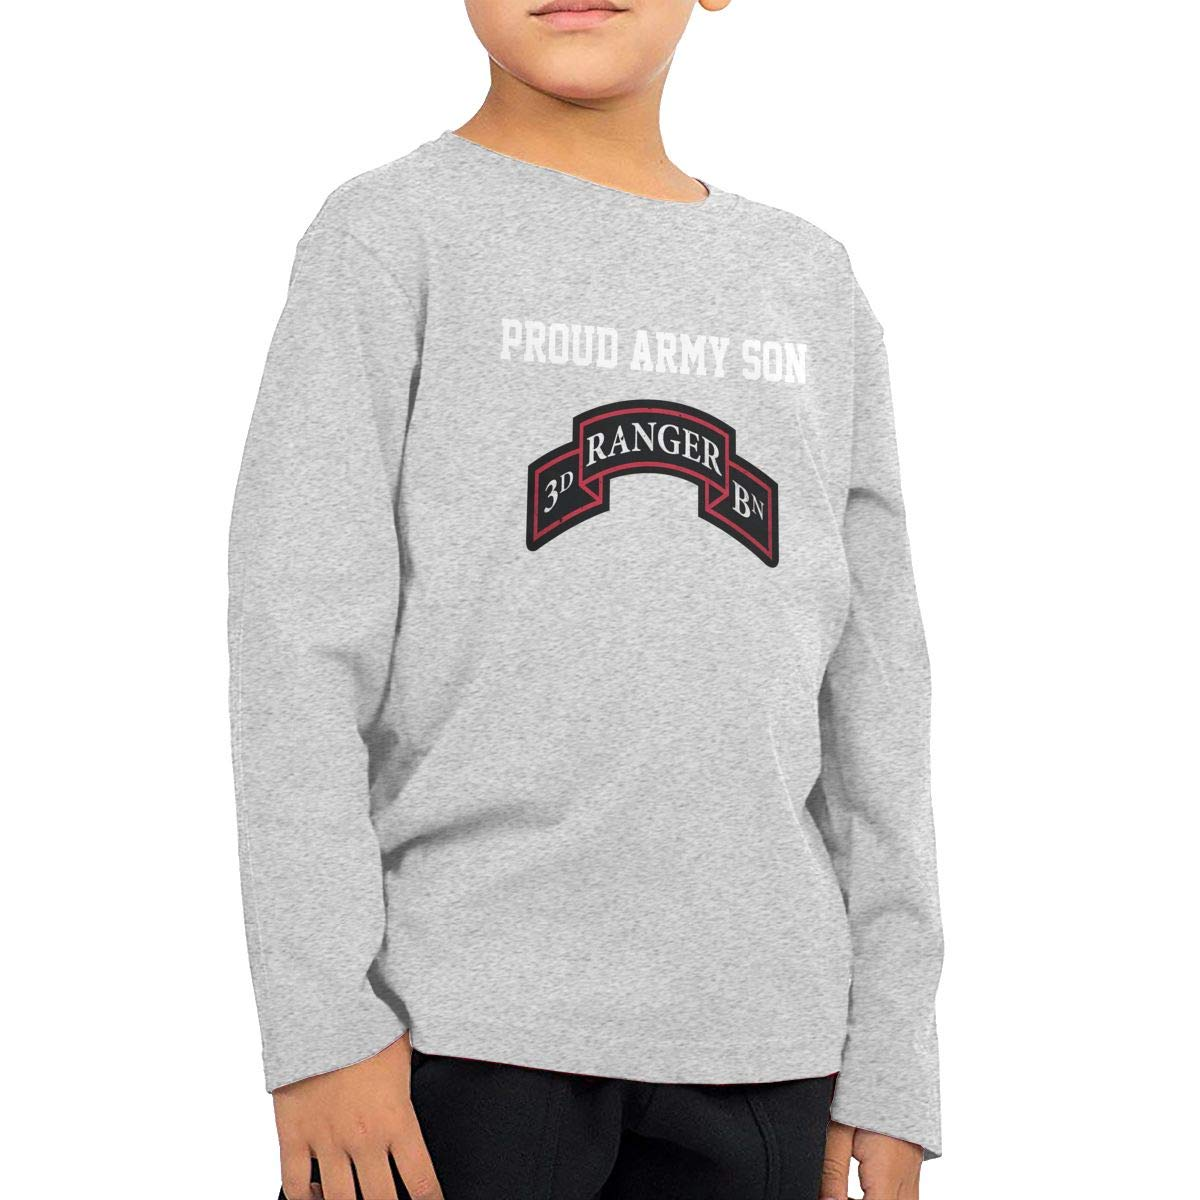 HADYKIDSLOVE US Army 3rd Ranger Battalion SSI Kids T-Shirt Long Sleeve Boys Girls T-Shirt